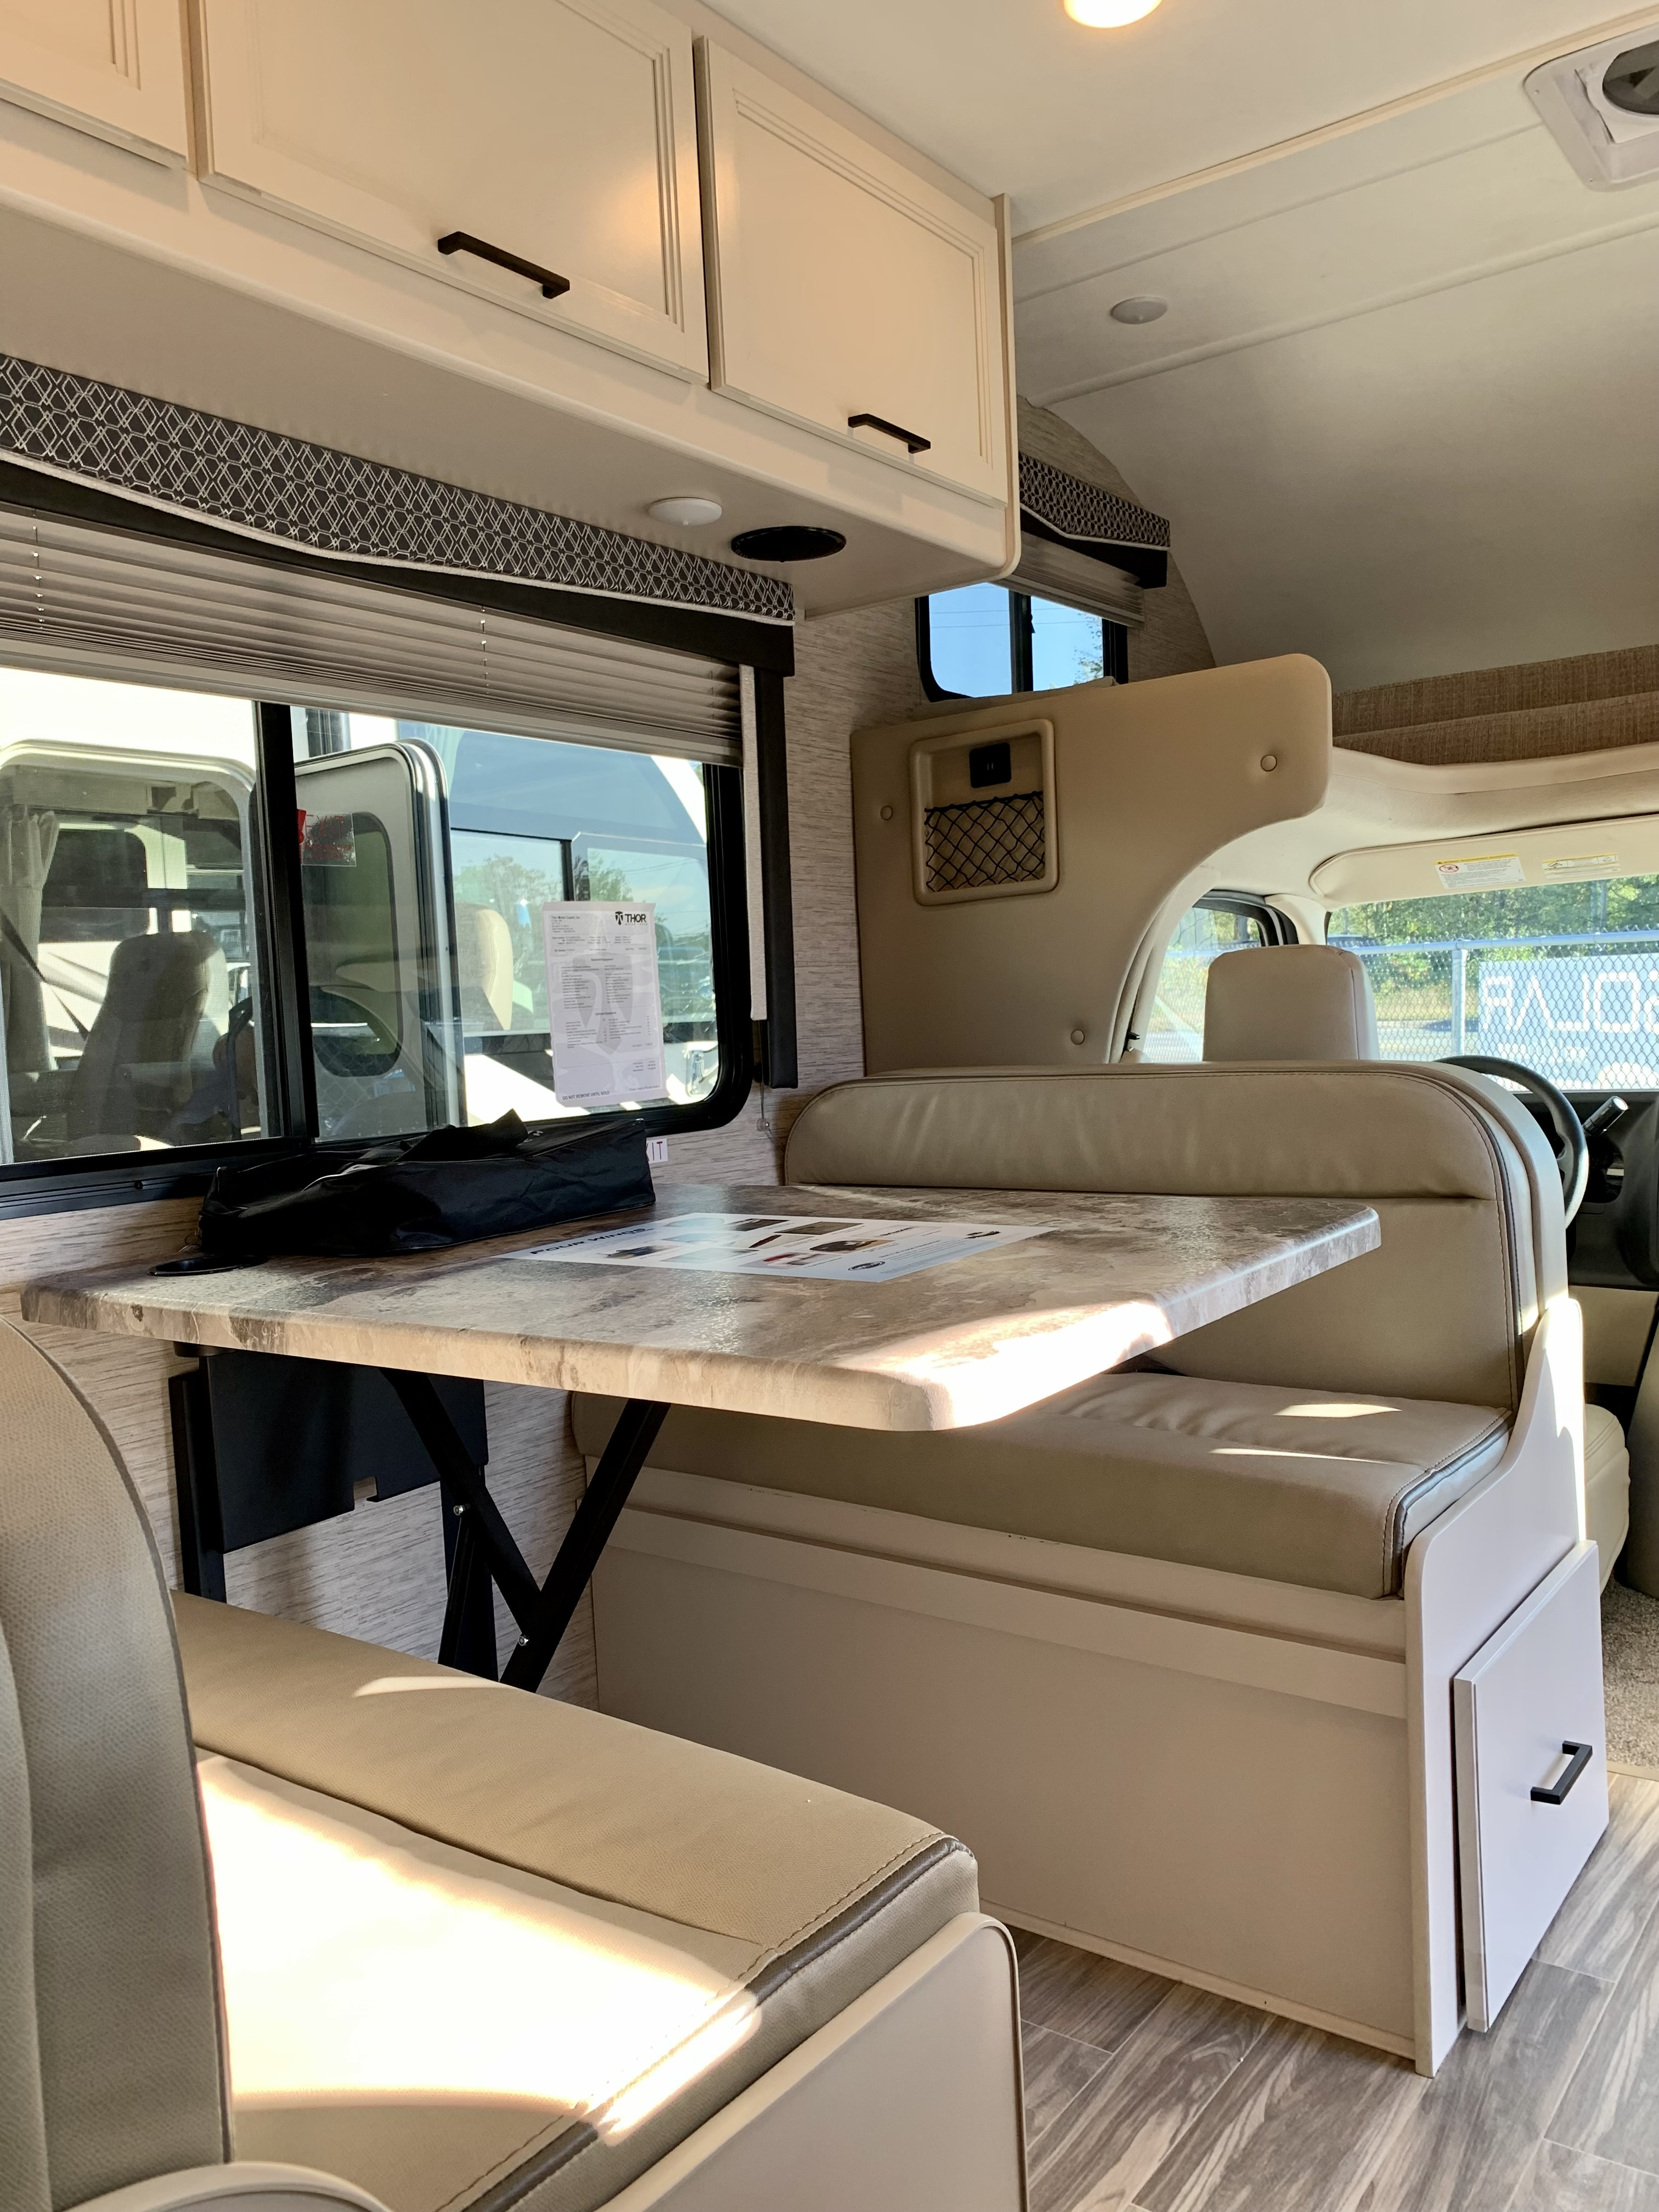 THOR MOTOR COACH FOURWINDS 22B NEW CLASS C MOTORHOME FOR SALE IN HALIFAX NS